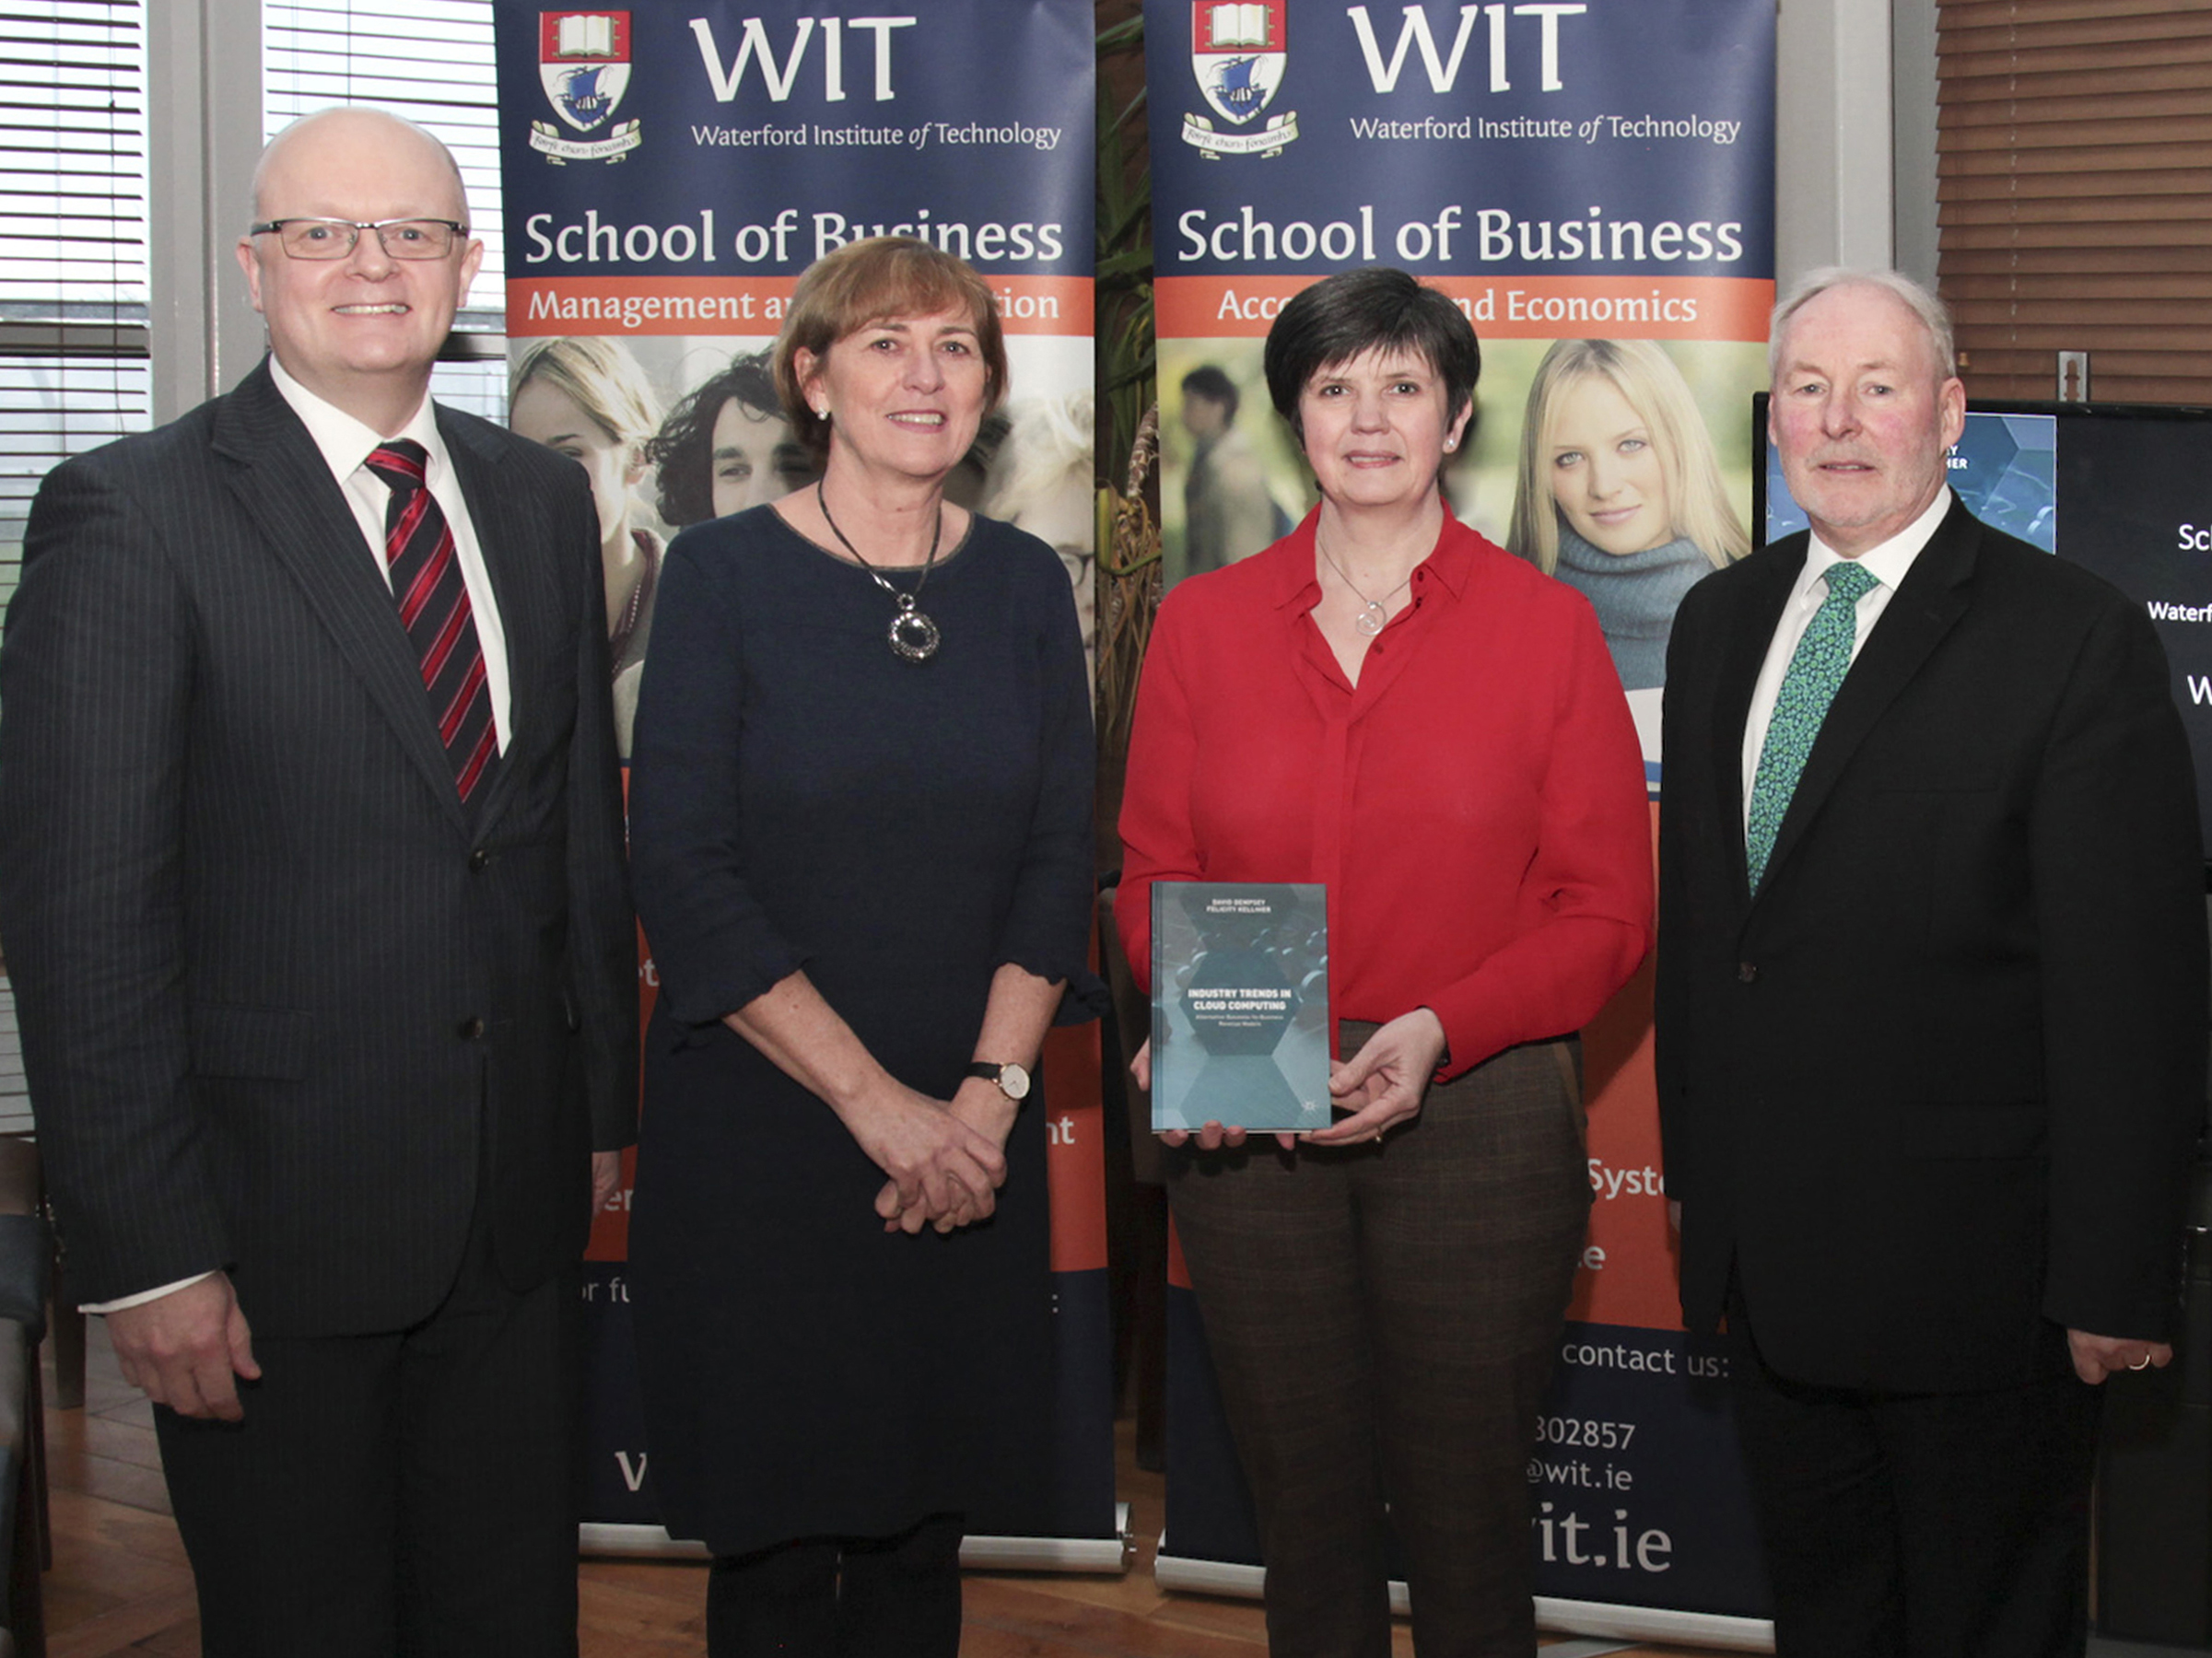 Pictured at the launch of Industry trends in cloud computing: Alternative business-to-business revenue models are Dr Thomas O'Toole, Dean of the School of Business,  Head of Department of Management and Organisation Joan McDonald, and the co-authors Felicity Kelliher and David Dempsey